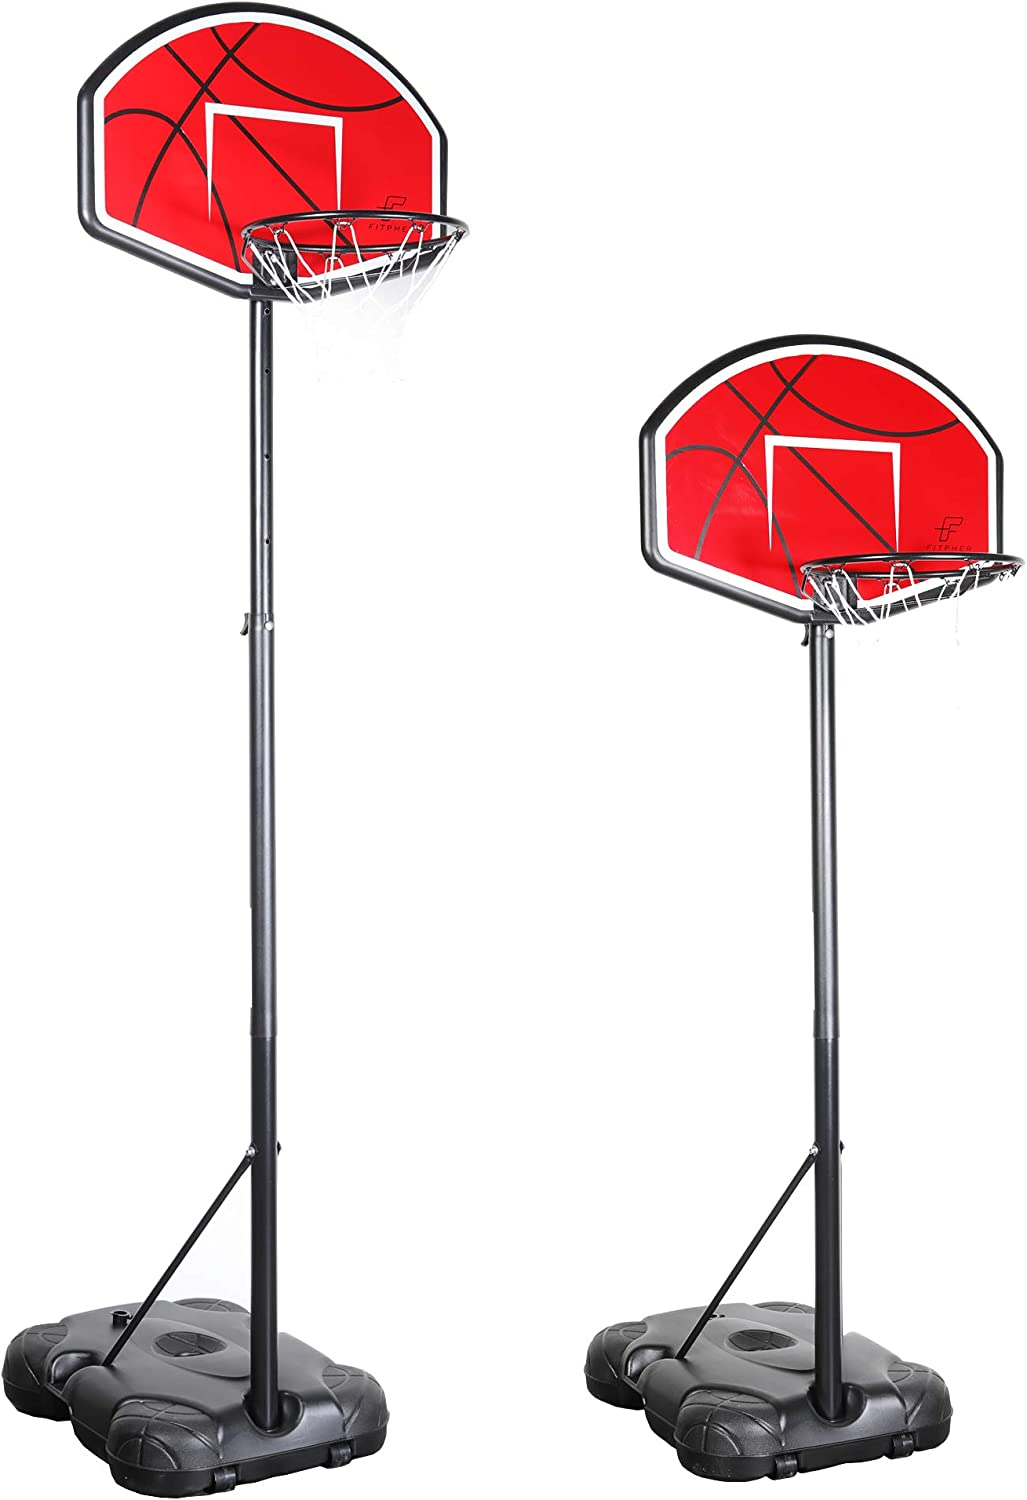 FITPHER Portable A surprise price is realized Basketball Hoop S Height Long-awaited Adjustable